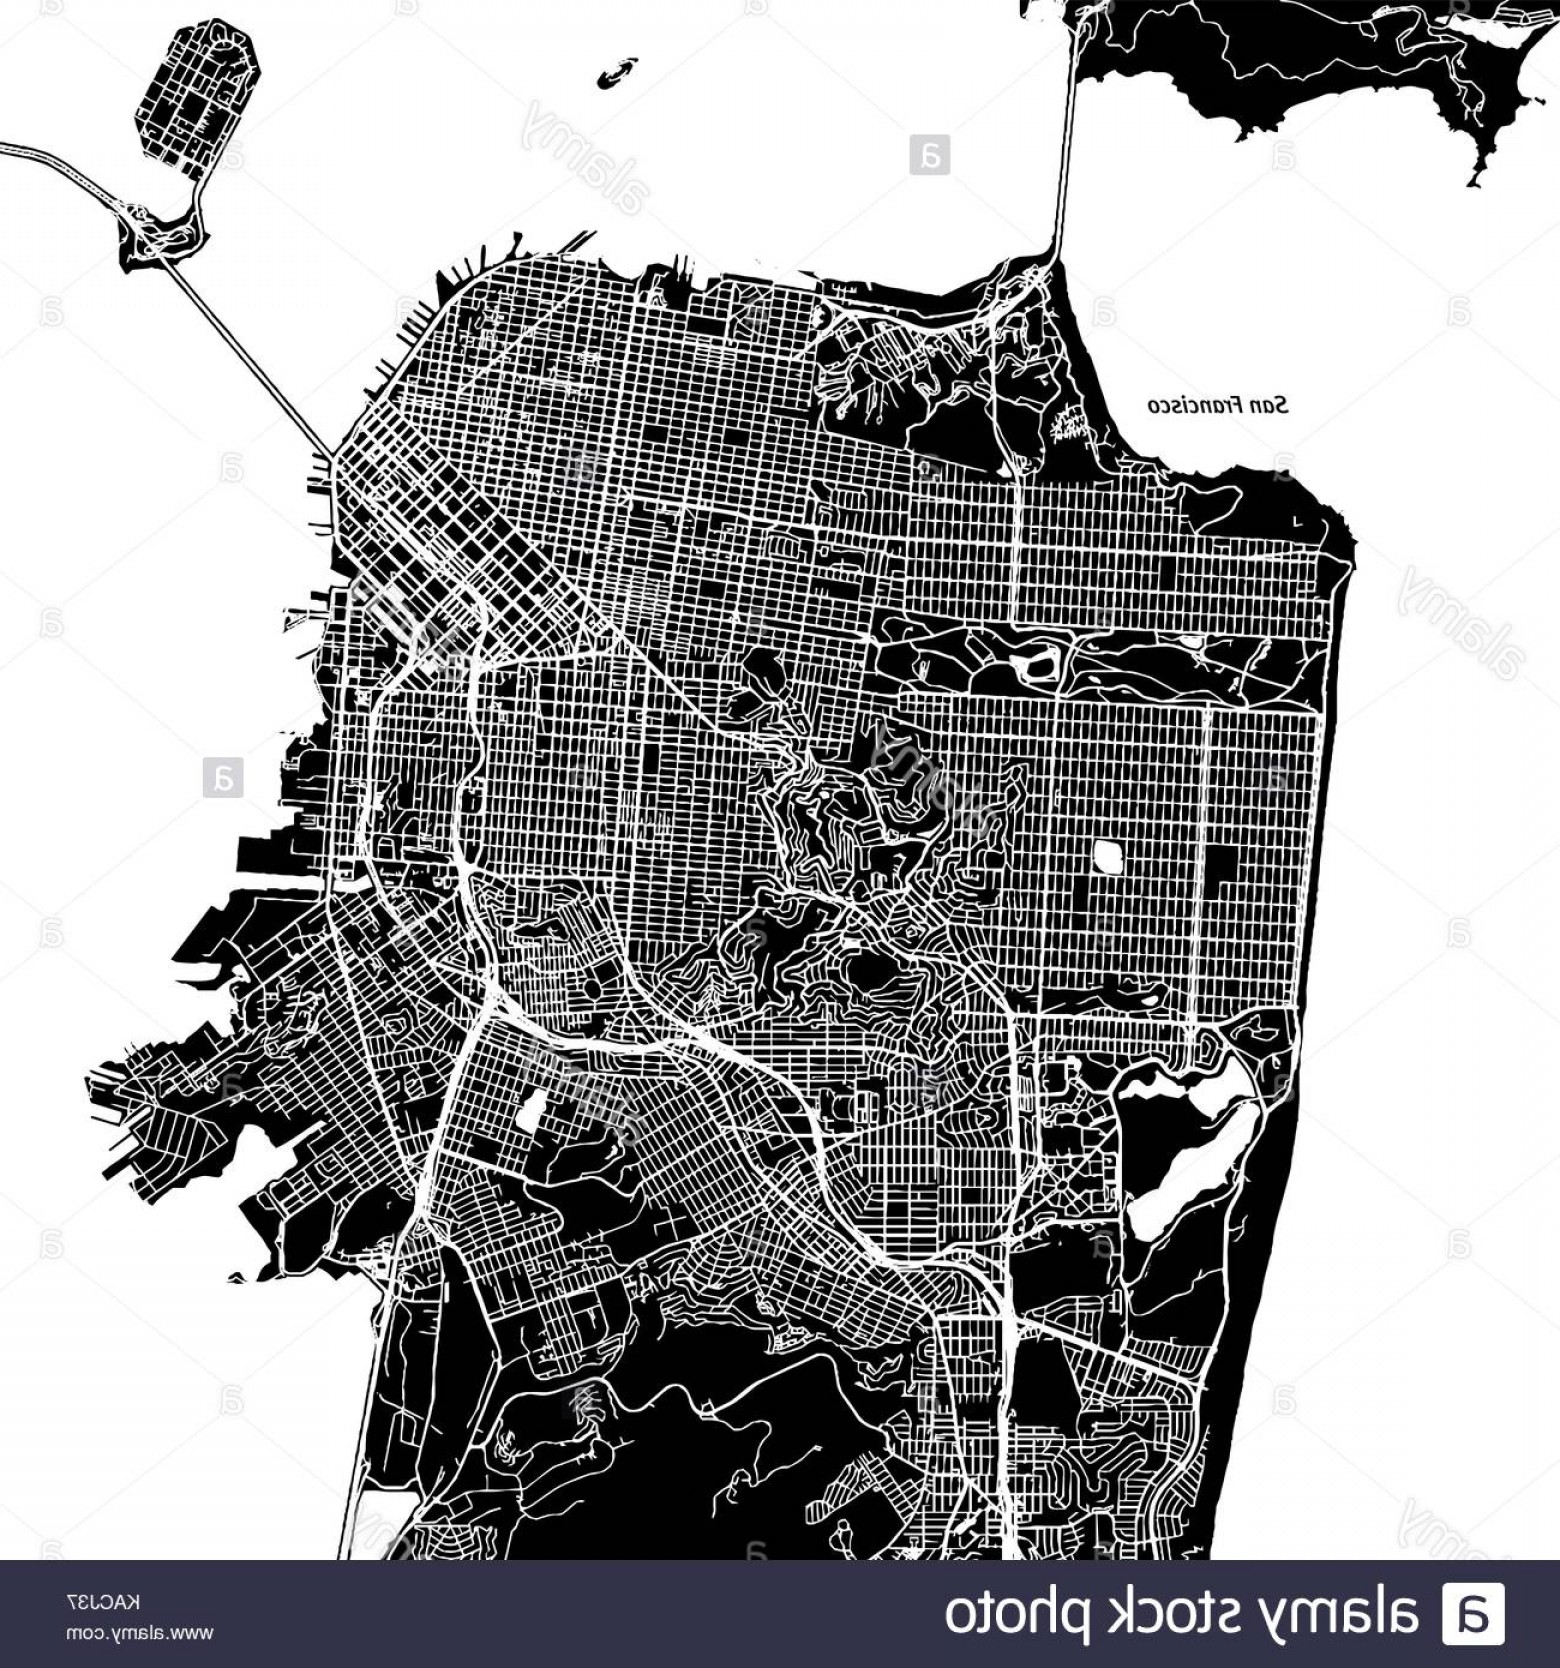 California Black And White Vector: Stock Image San Francisco California Downtown Vector Map City Name On A Separate